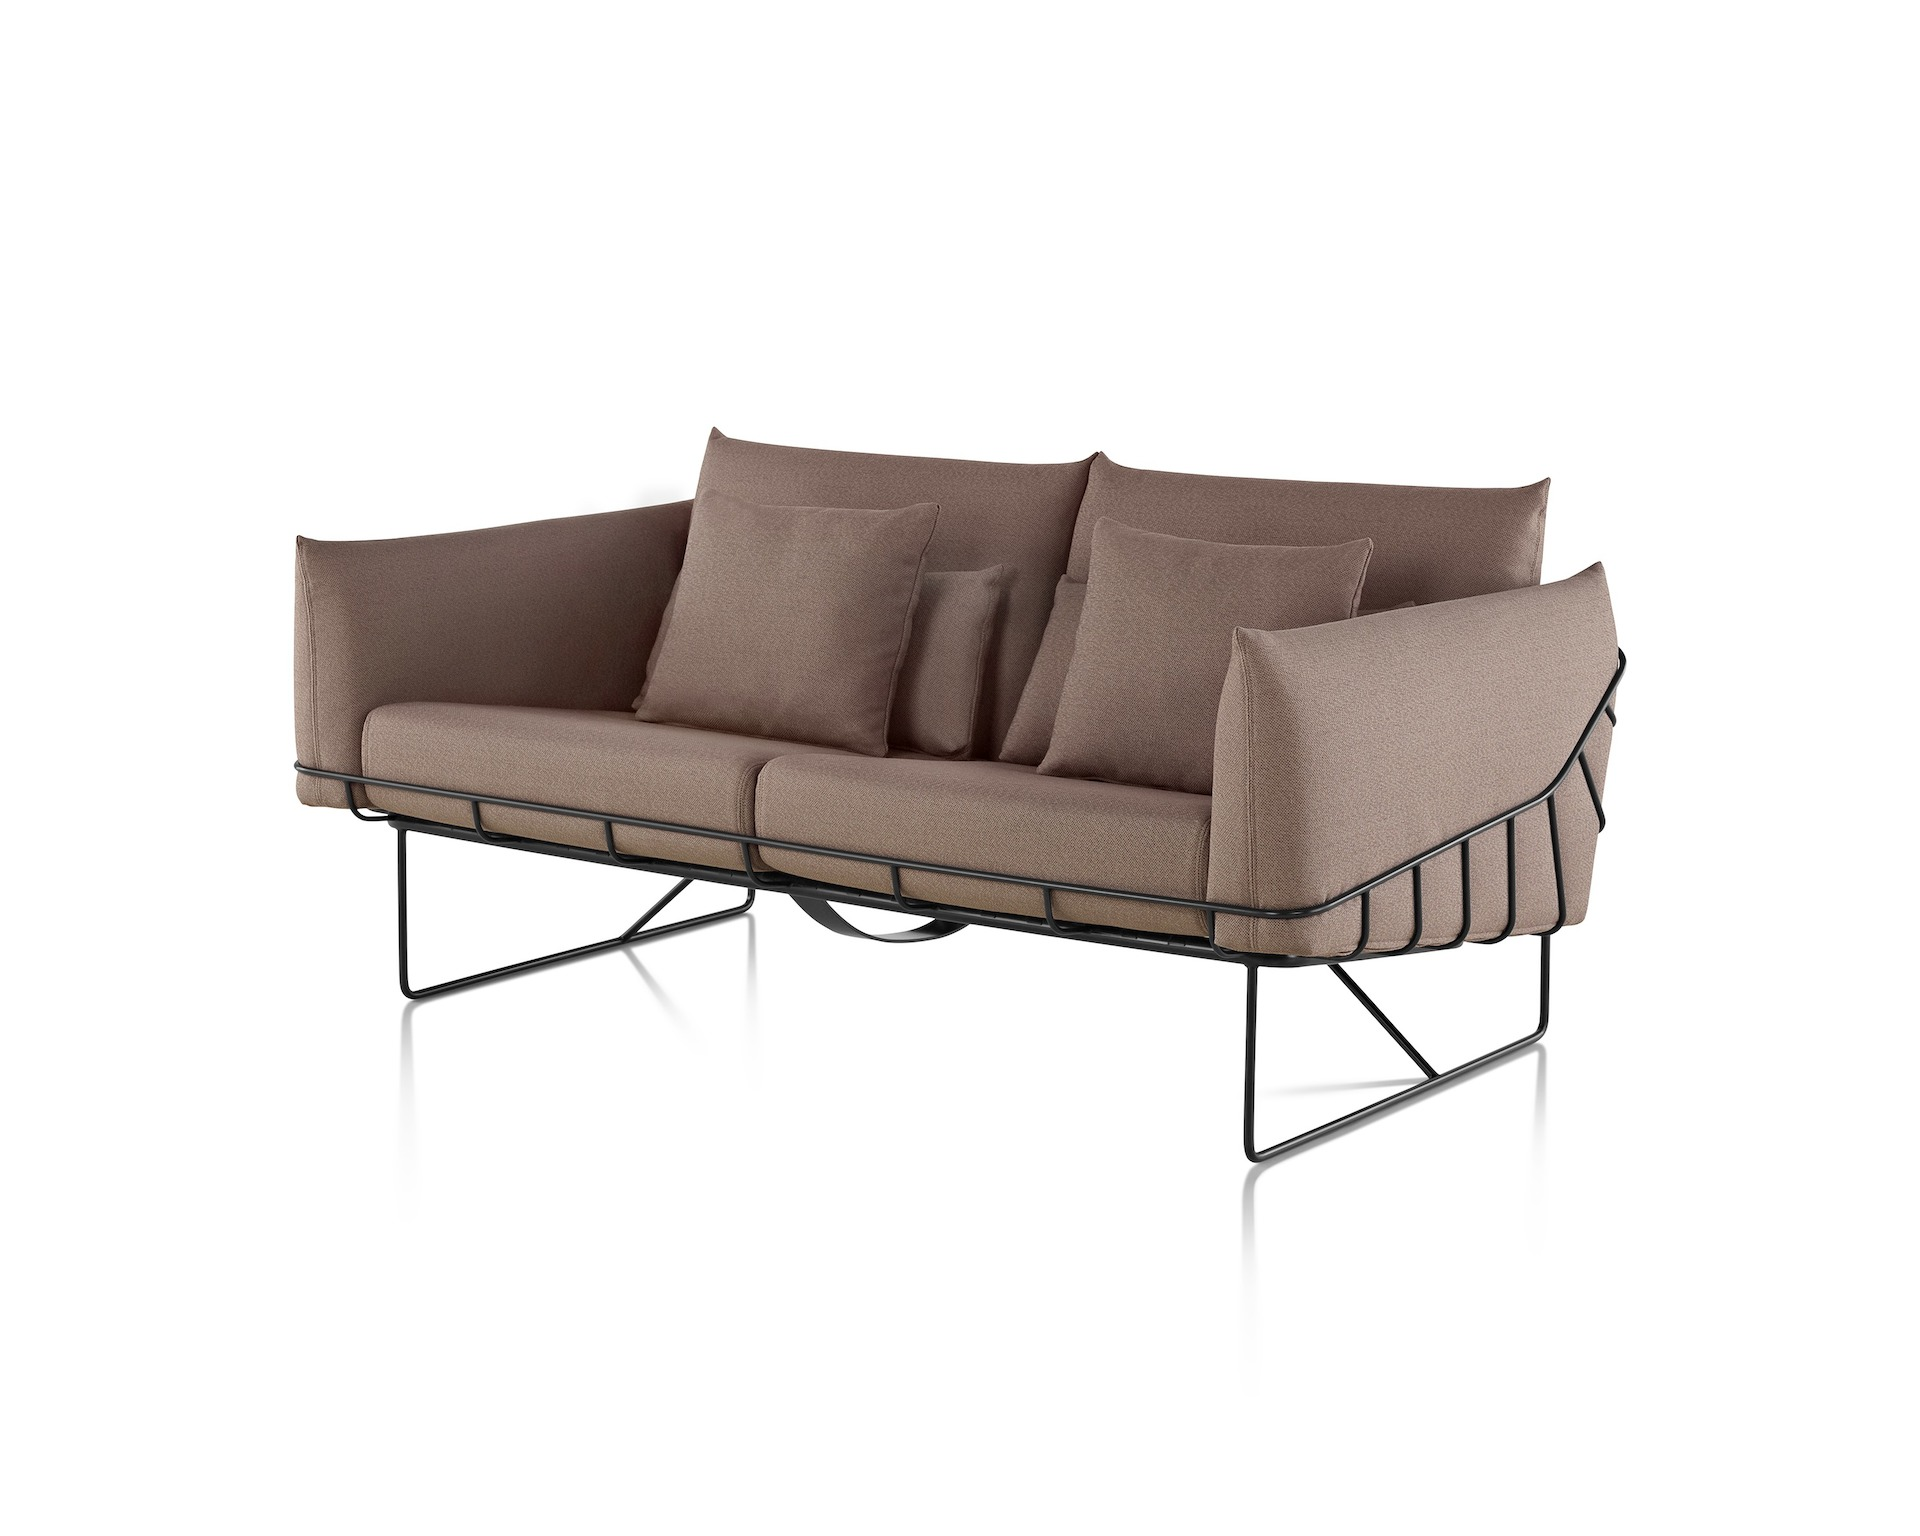 Eames Chair Bim Herman Miller Wireframe Sofa Revit Review Home Co